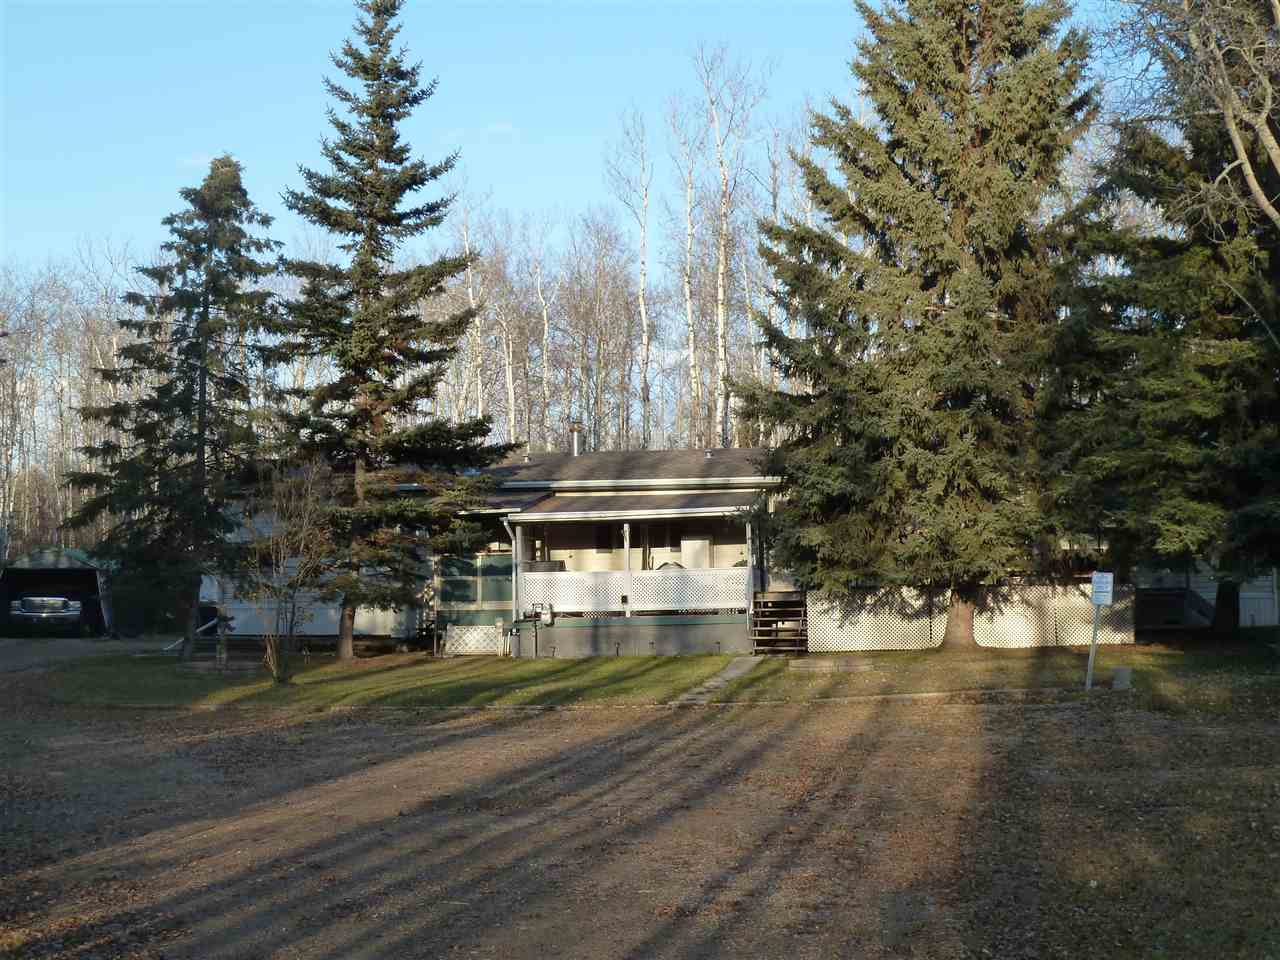 This year round home or summer retreat  is a steal of a deal at Fork Lake Estates!  This great property is situated in a quiet cul-de-sac and has a 16'x76' mobile with 3 bedrooms, 2 bathrooms, one being an ensuite off the master with a jetted tub.  In addition there is a 12'x16' guest cabin with power and an antique wood, coal/heat and cook stove. This .65 acre property and mobile has been well kept over the years, is nicely landscaped and offers a large variety of powered sheds and a wood shed and a nice deck.  There's also fresh berries and cherries and a great firefit area with a gazebo. Gorgeous sandy beach nearby.  You'll be very pleased when you view this lovely home!